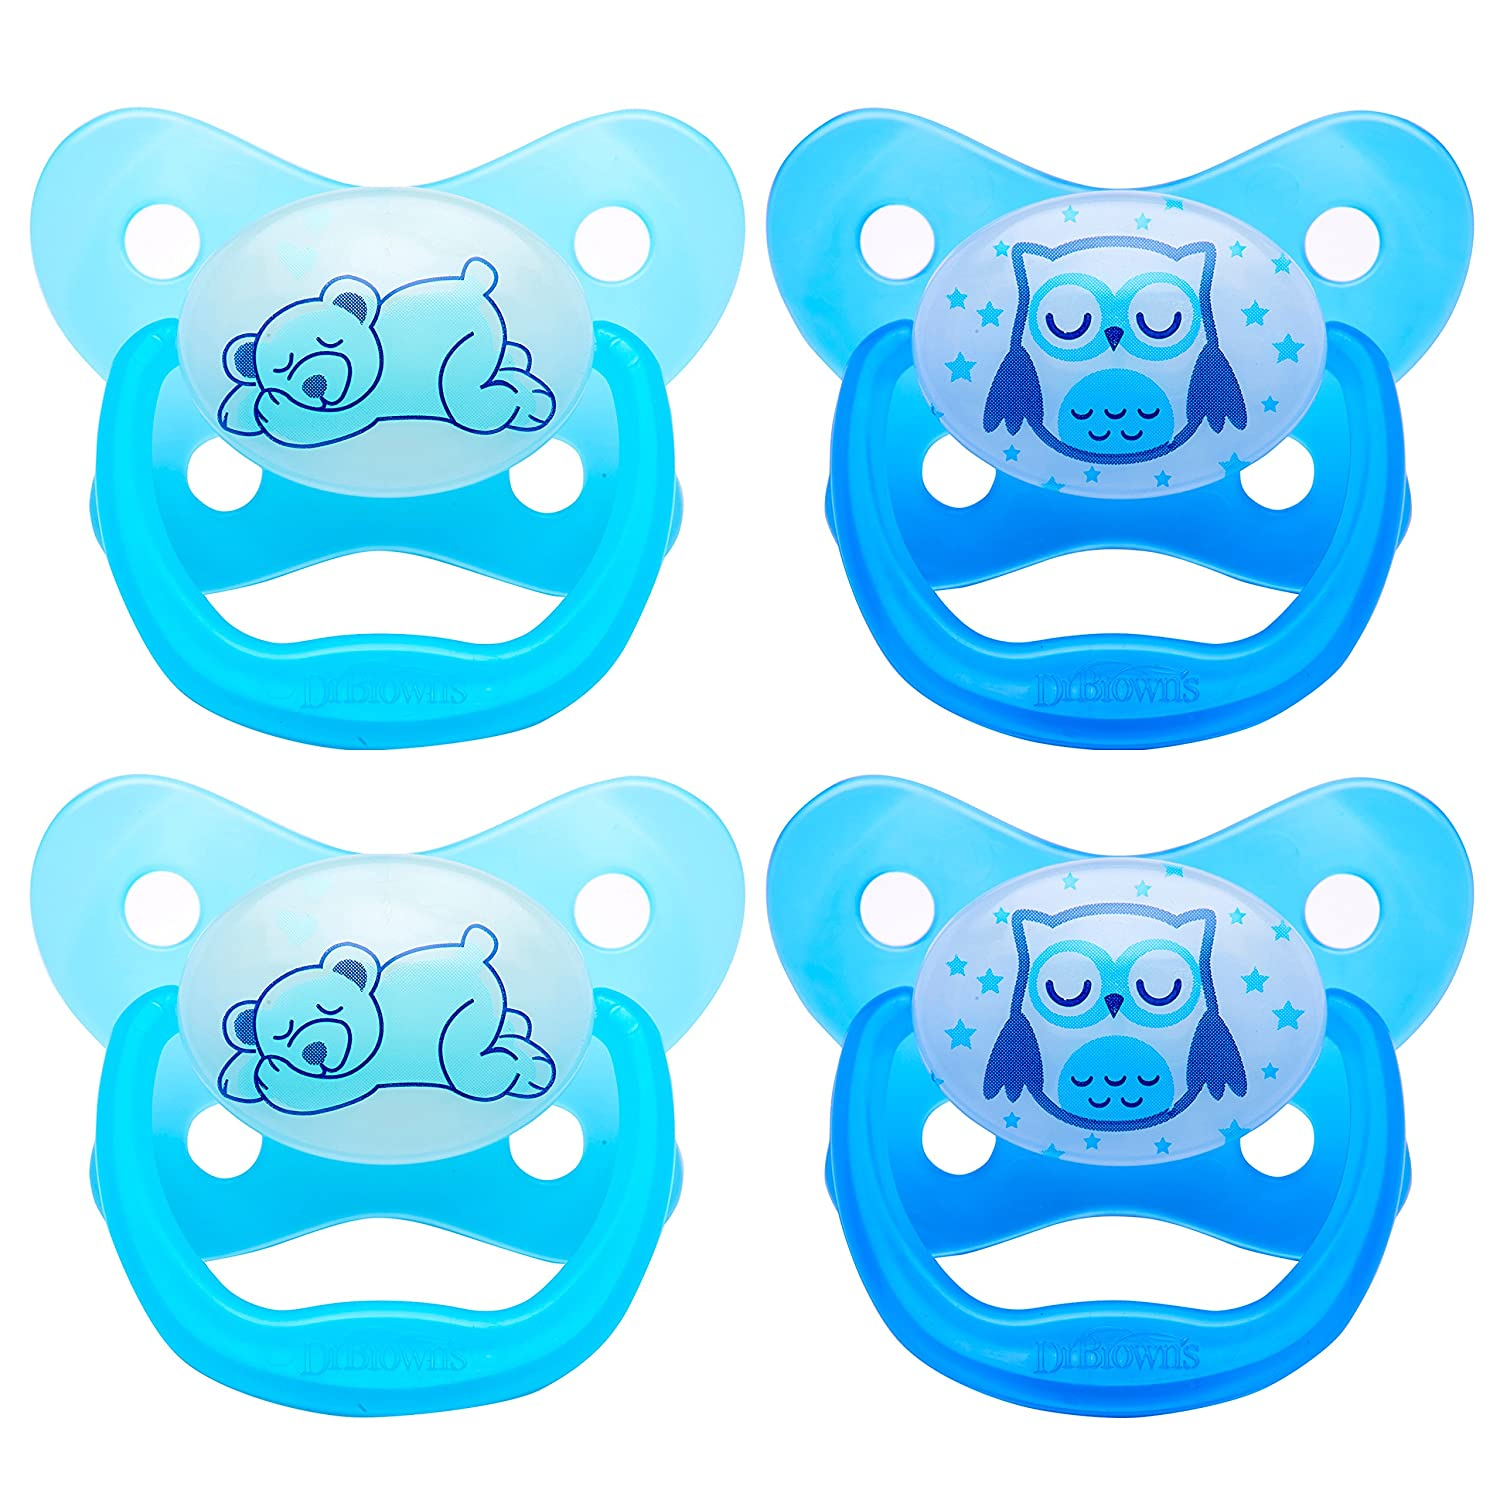 Dr. Browns PreVent Contour Glow in the Dark Pacifier, Stage 3 (12m+), Blue, 4-Count